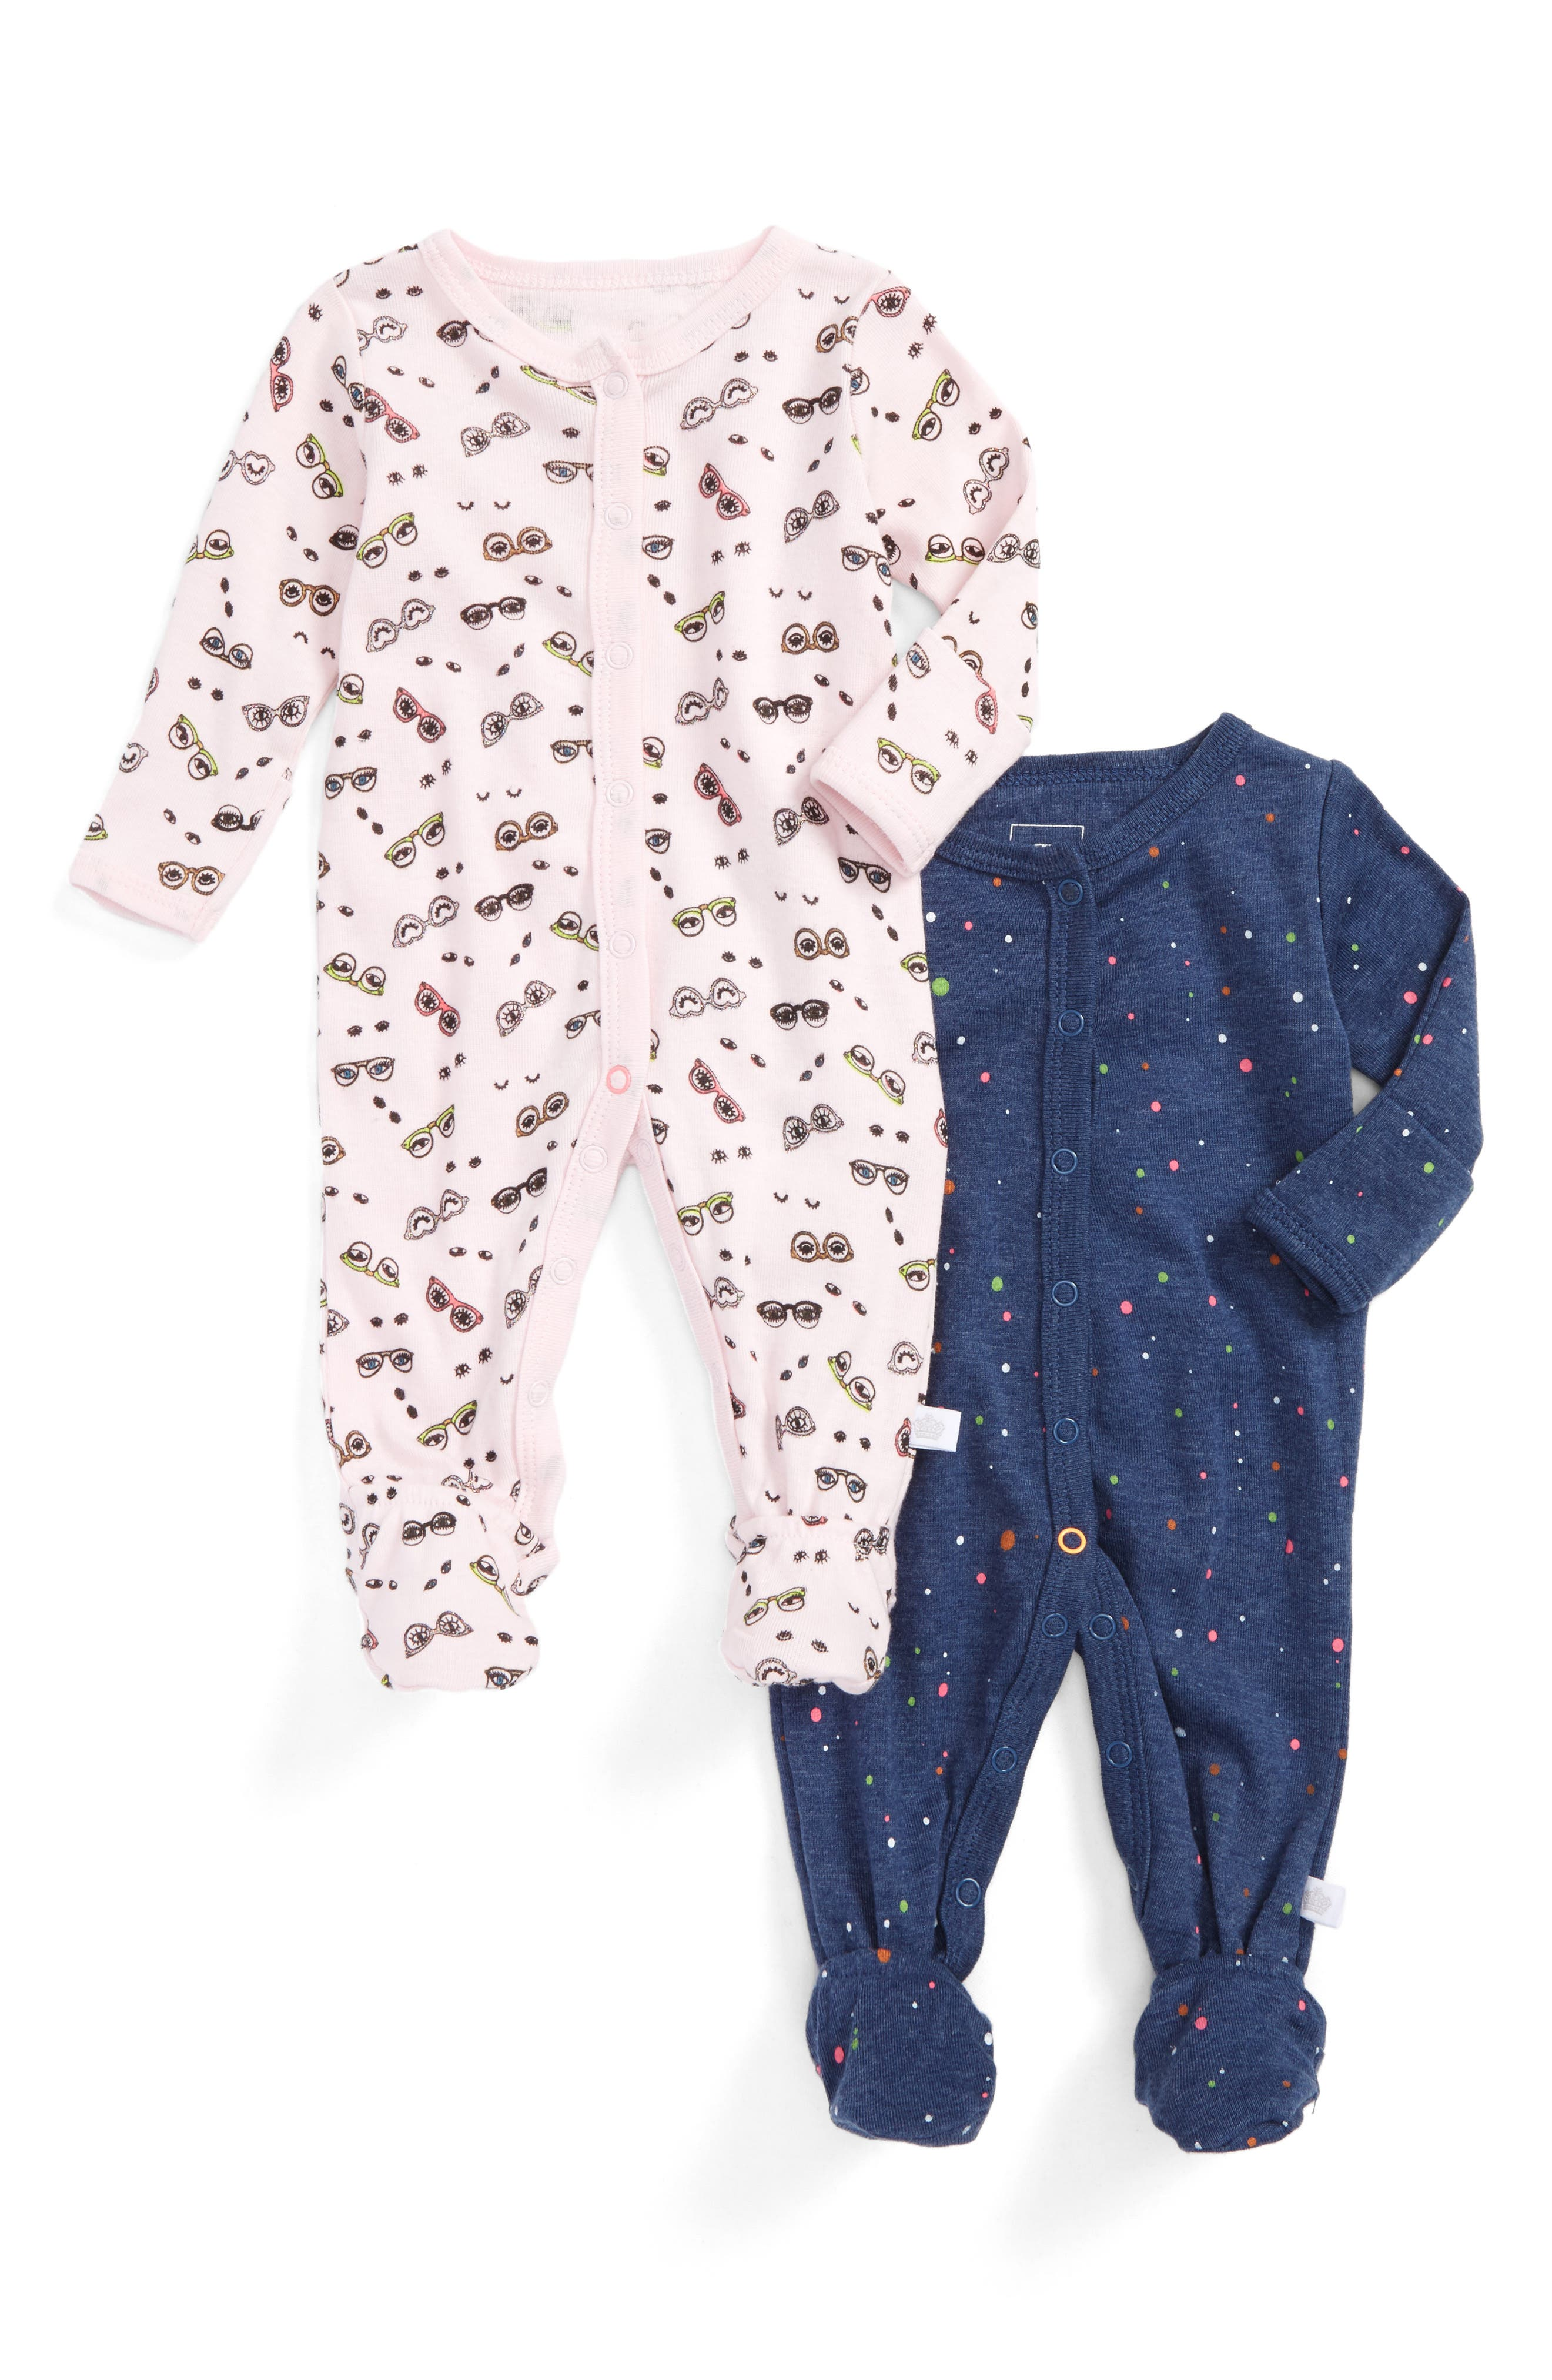 2-Pack Footies,                             Main thumbnail 1, color,                             Pink